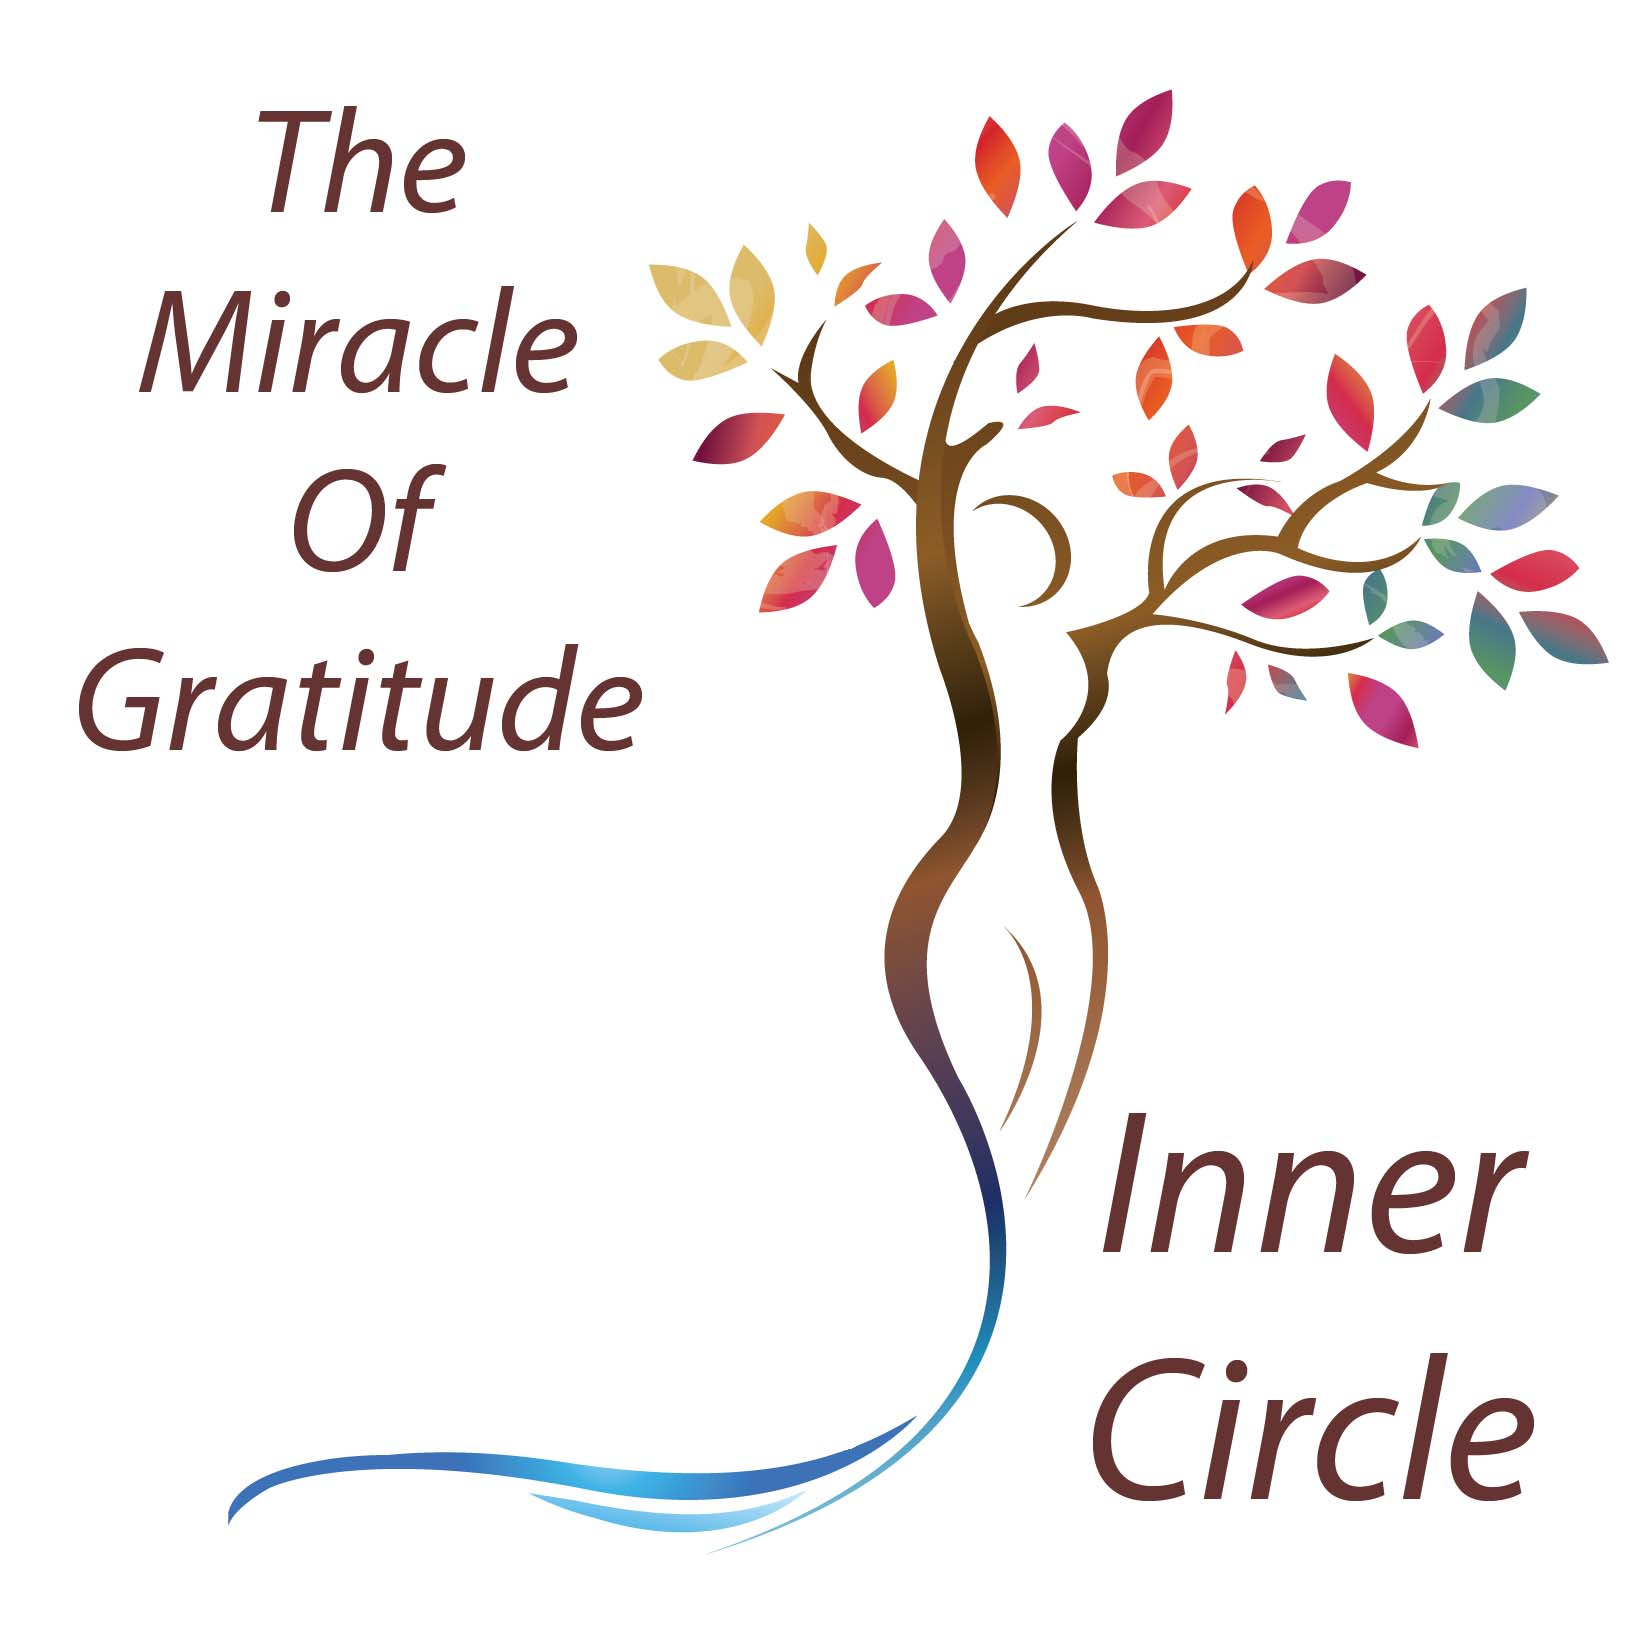 the-miracle-of-gratitude-inner-circle